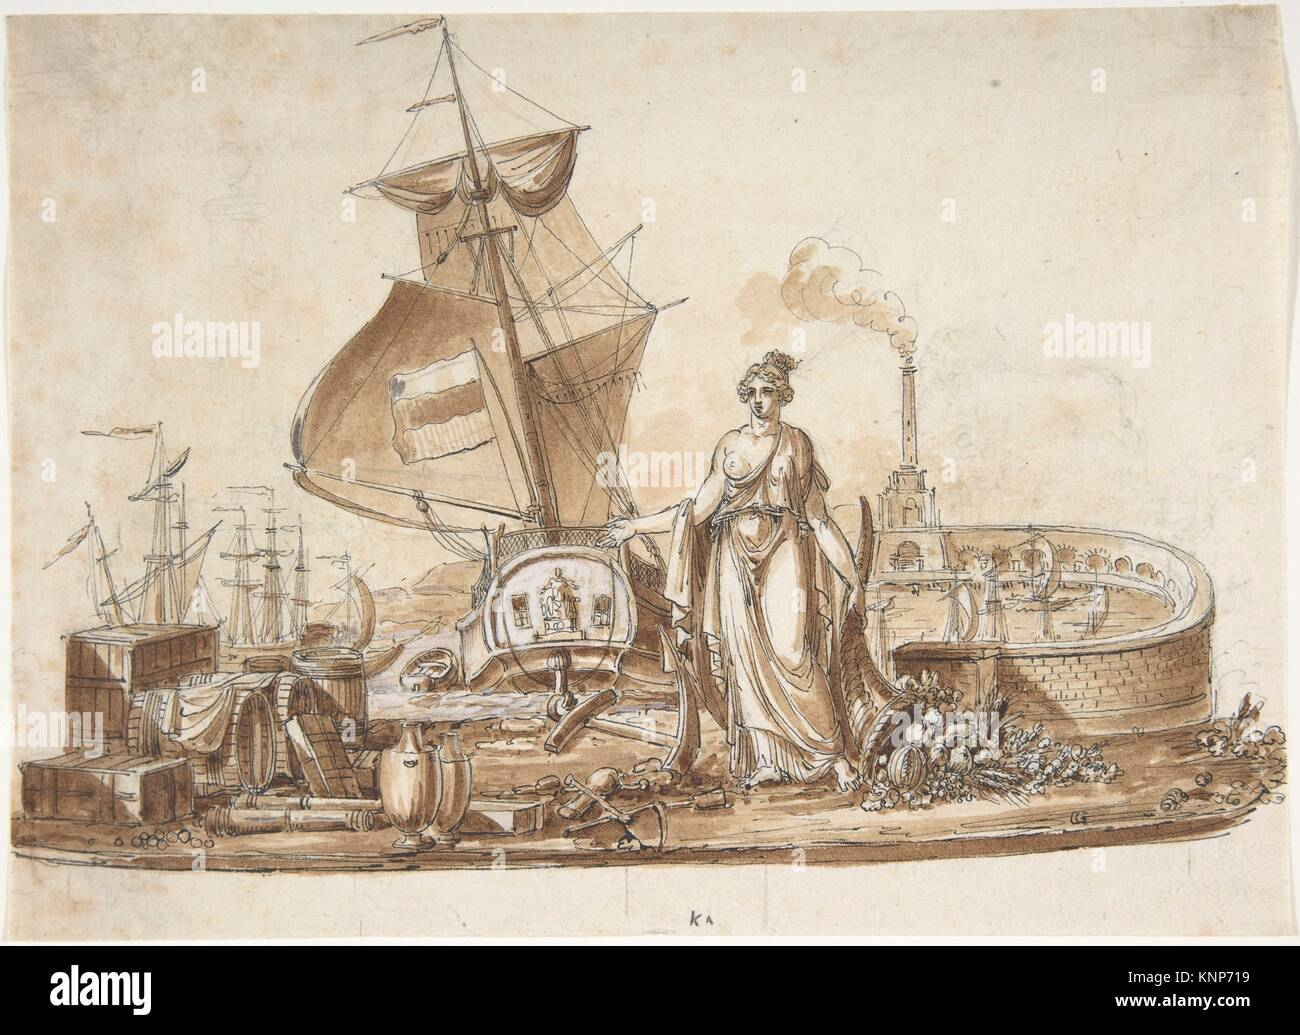 Allegory of Shipping. Artist: Charles Percier (French, Paris 1764-1838 Paris); Medium: Pen and black ink with brush - Stock Image